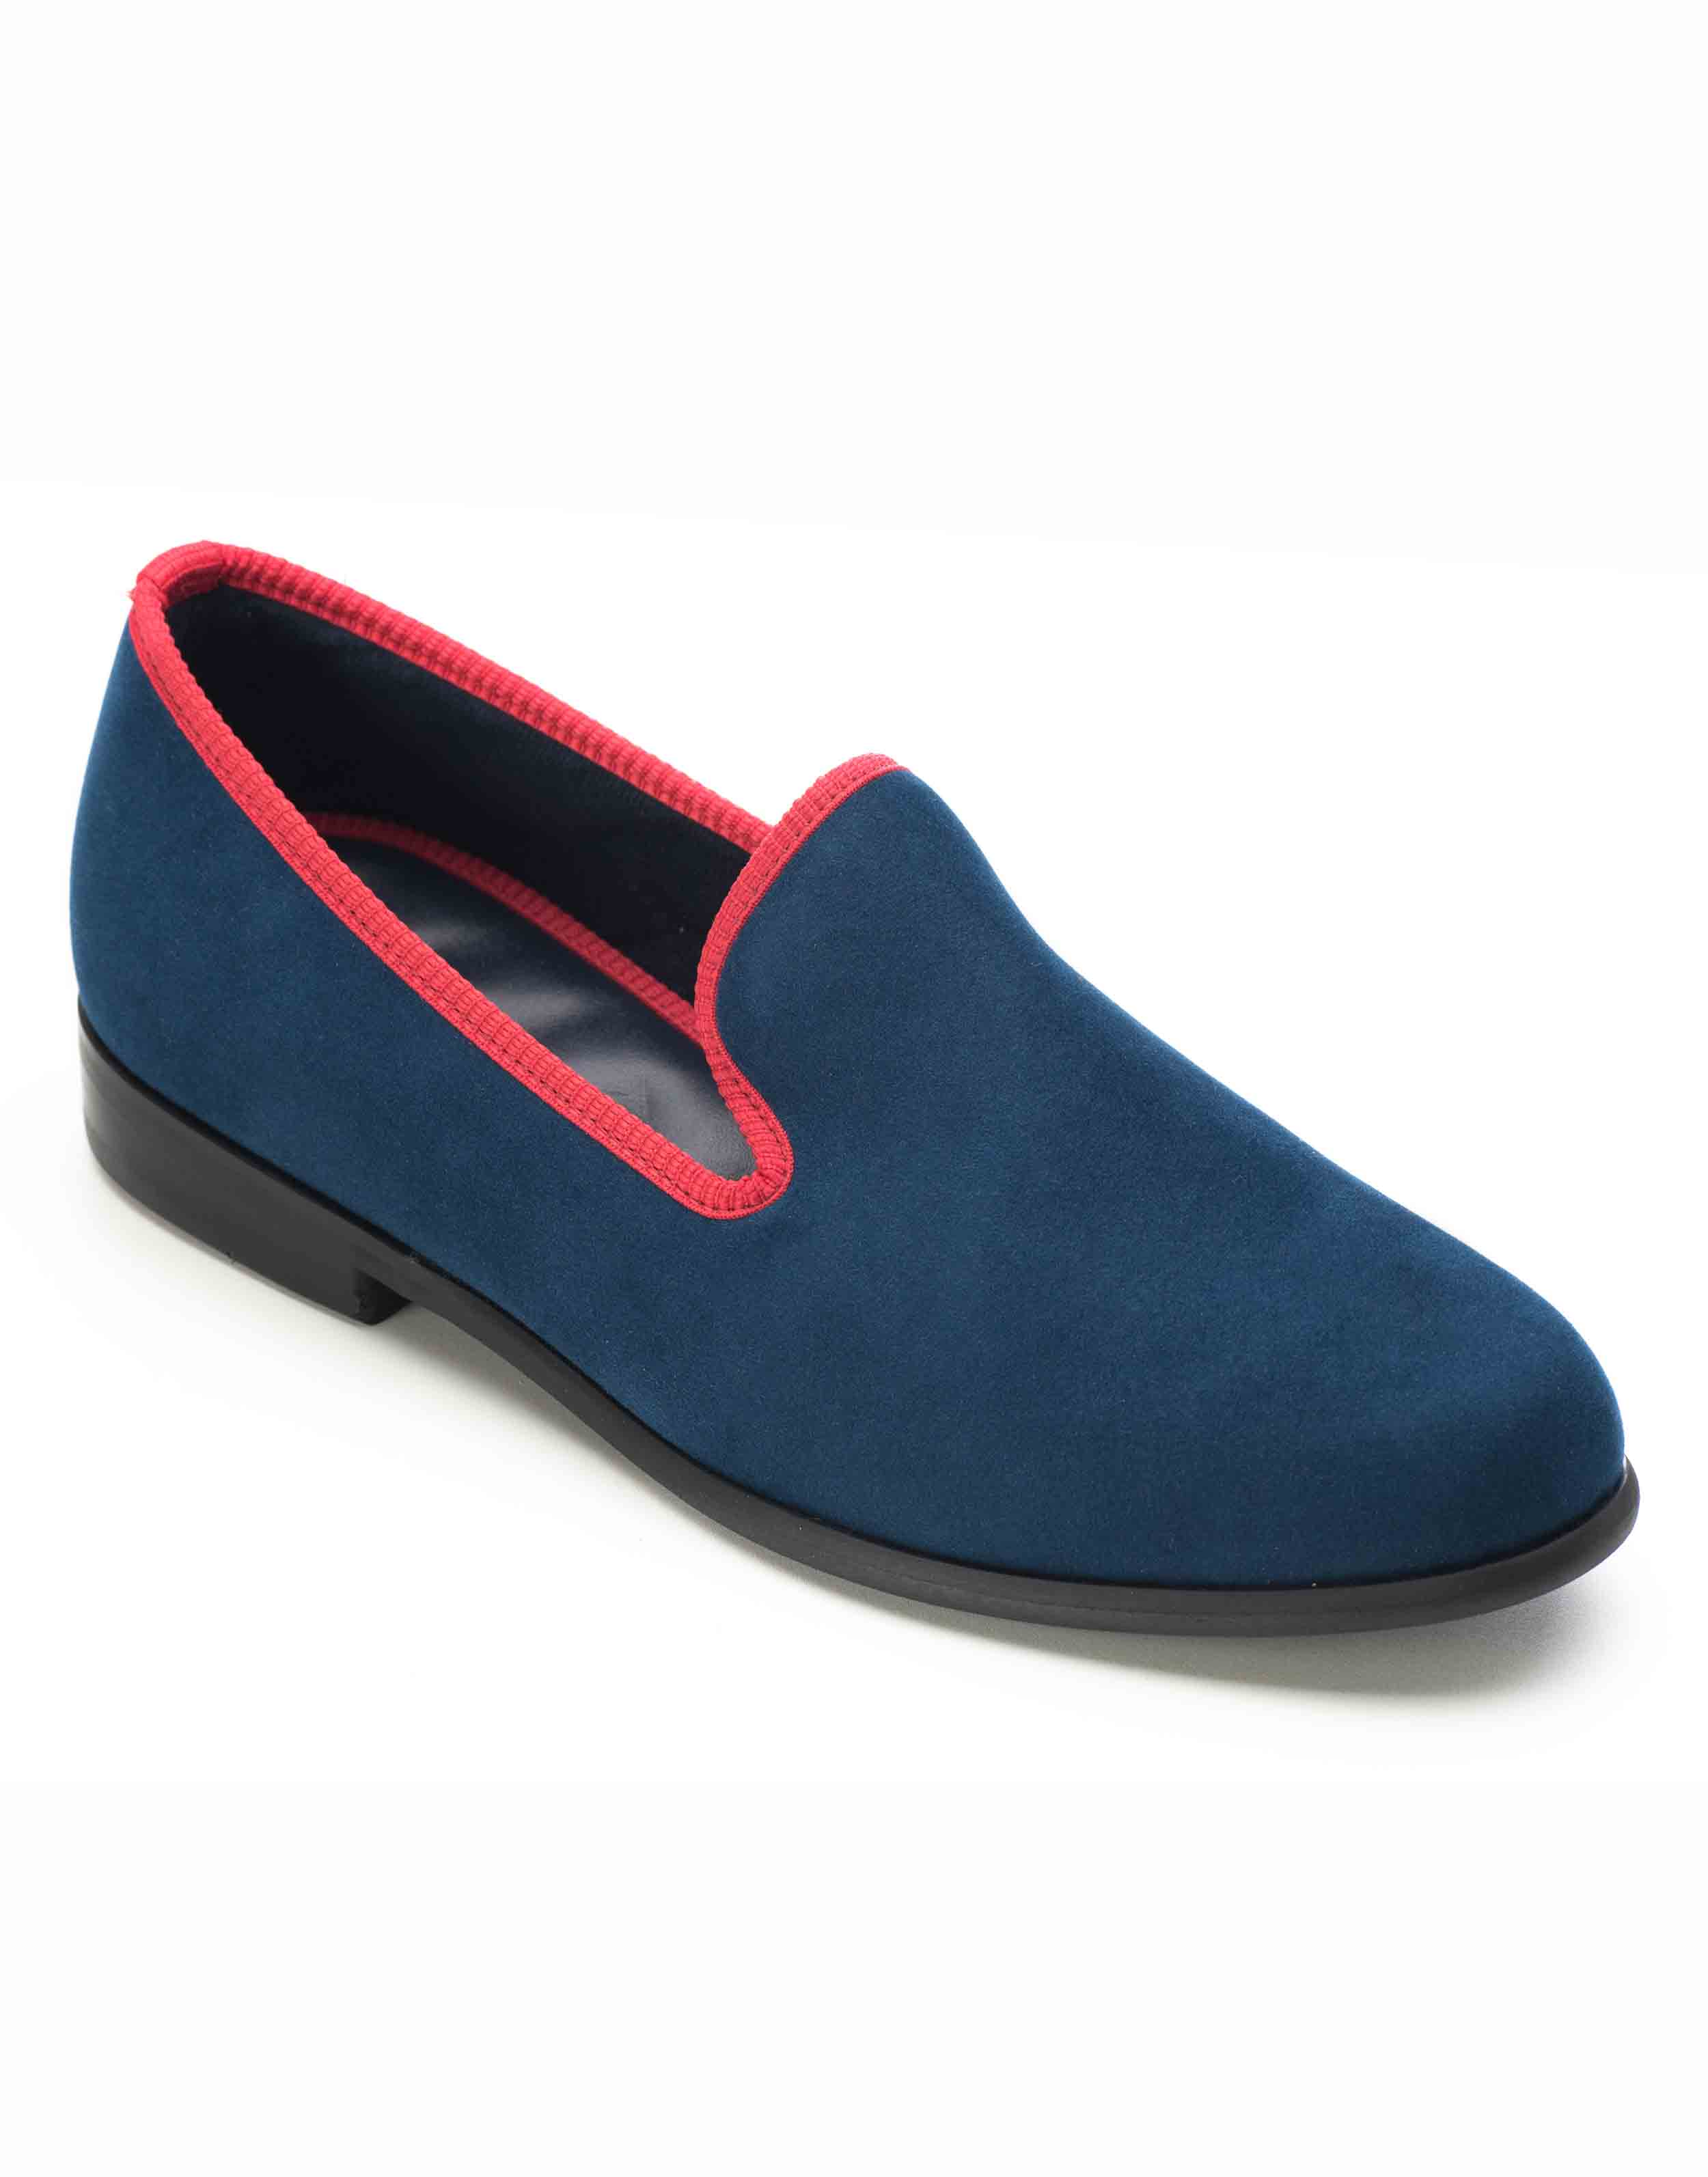 BLUE WITH RED TRIM SUEDE LOAFERS2